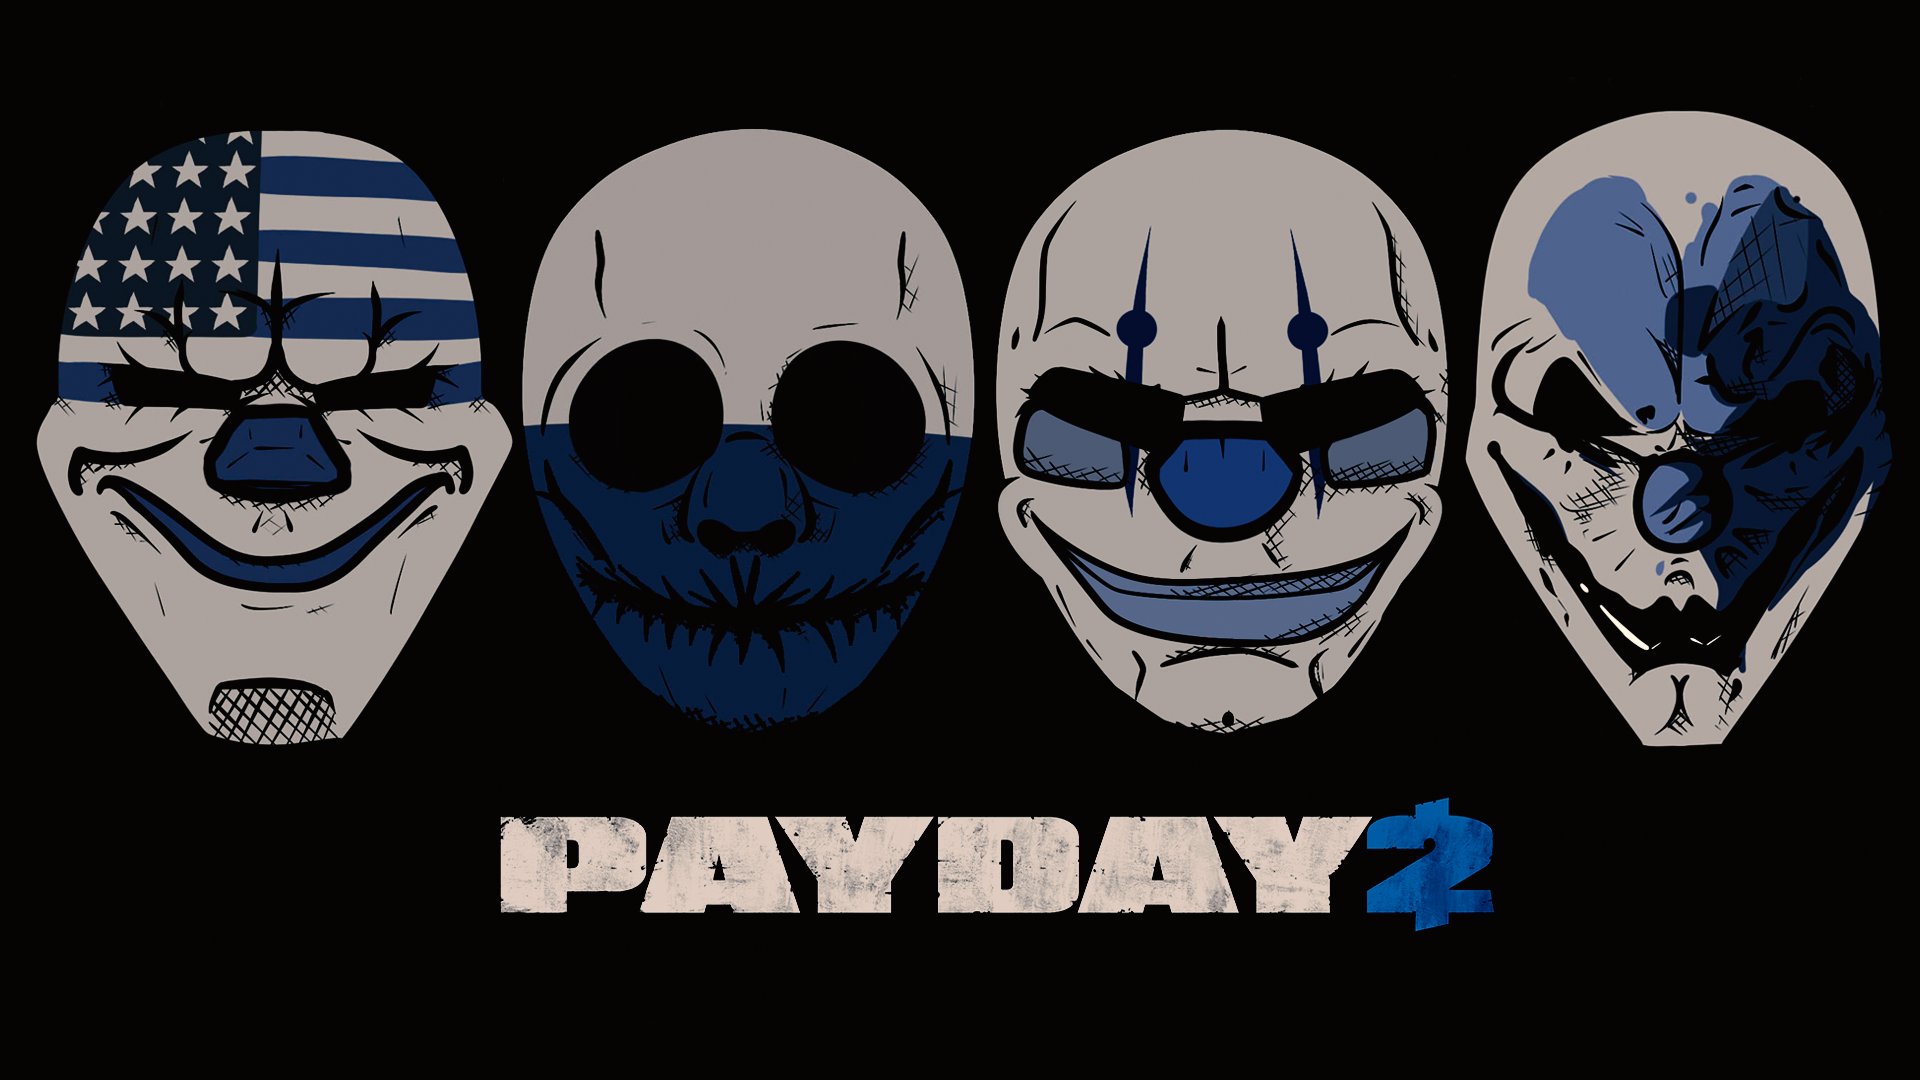 Payday  Wallpaper Wallpapers And Backgrounds Net Payday